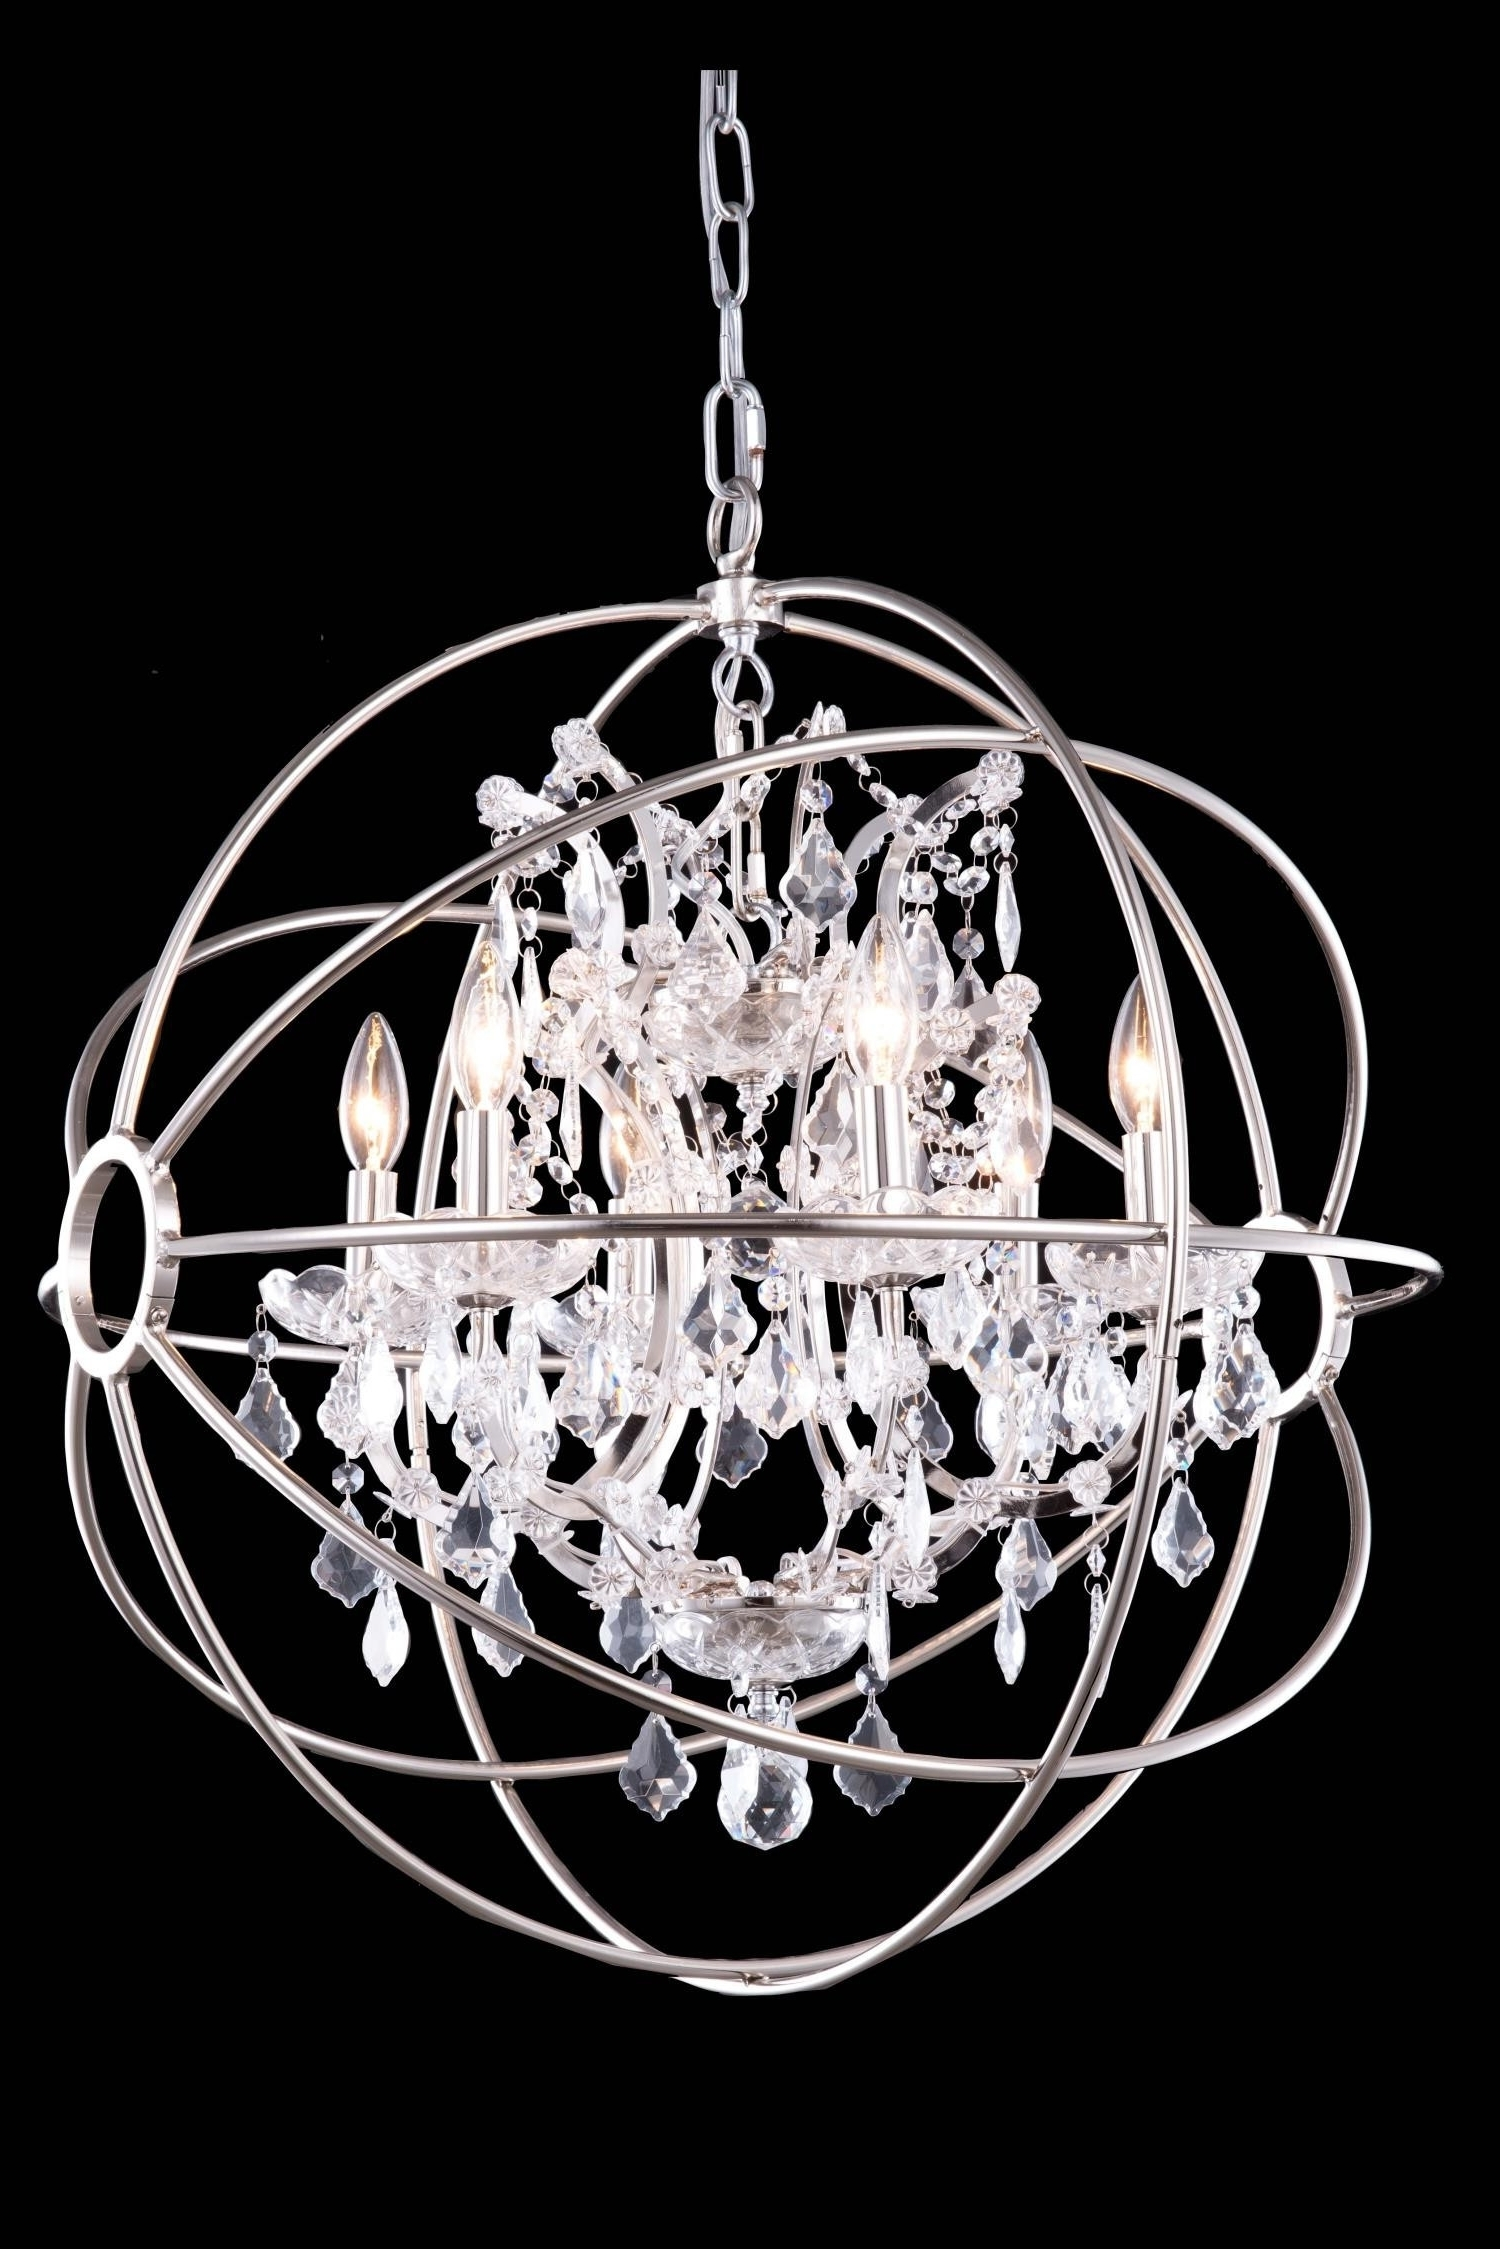 Globe Crystal Chandelier With Regard To Fashionable Chandeliers : Magnificent Large Crystal Chandeliers Elegant 12 Best (View 8 of 15)